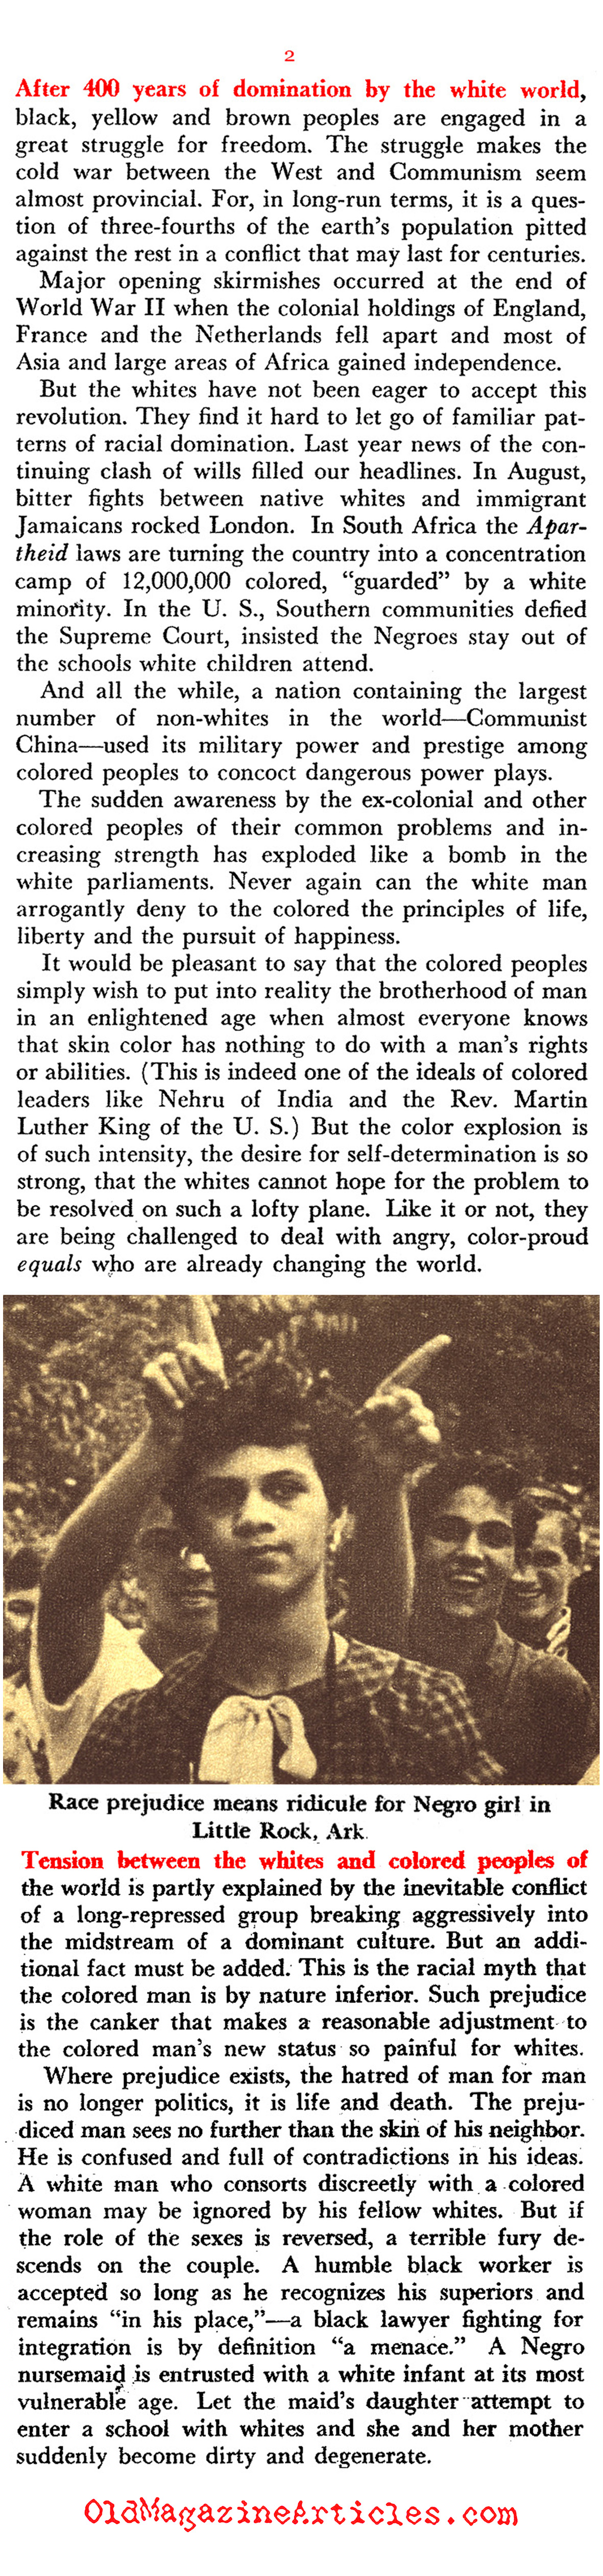 Cold War Politics and People of Color (Pageant Magazine, 1959)